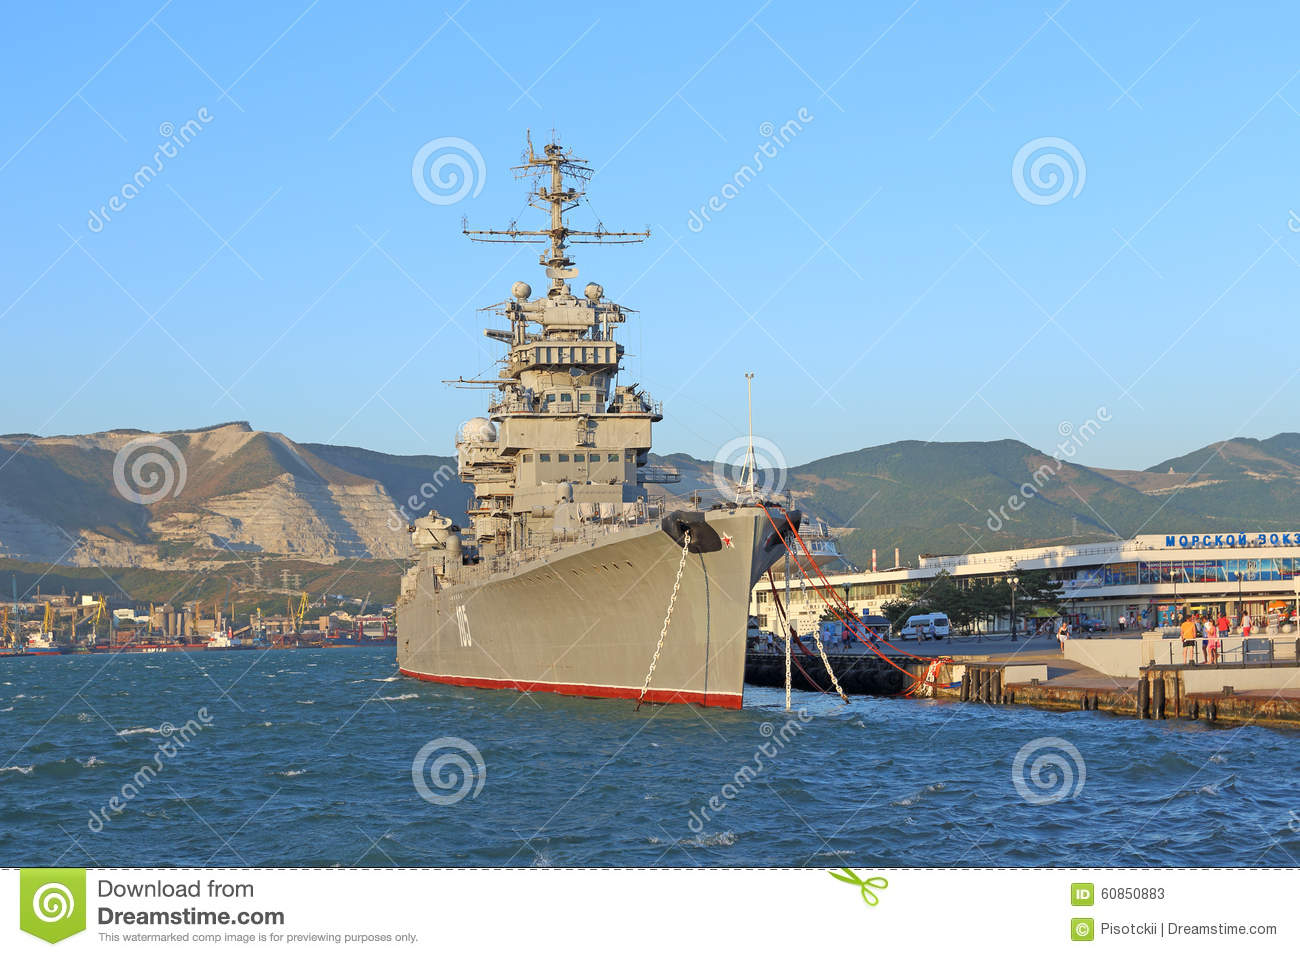 The Warship In The Port Of Novorossiysk Editorial Stock Photo.